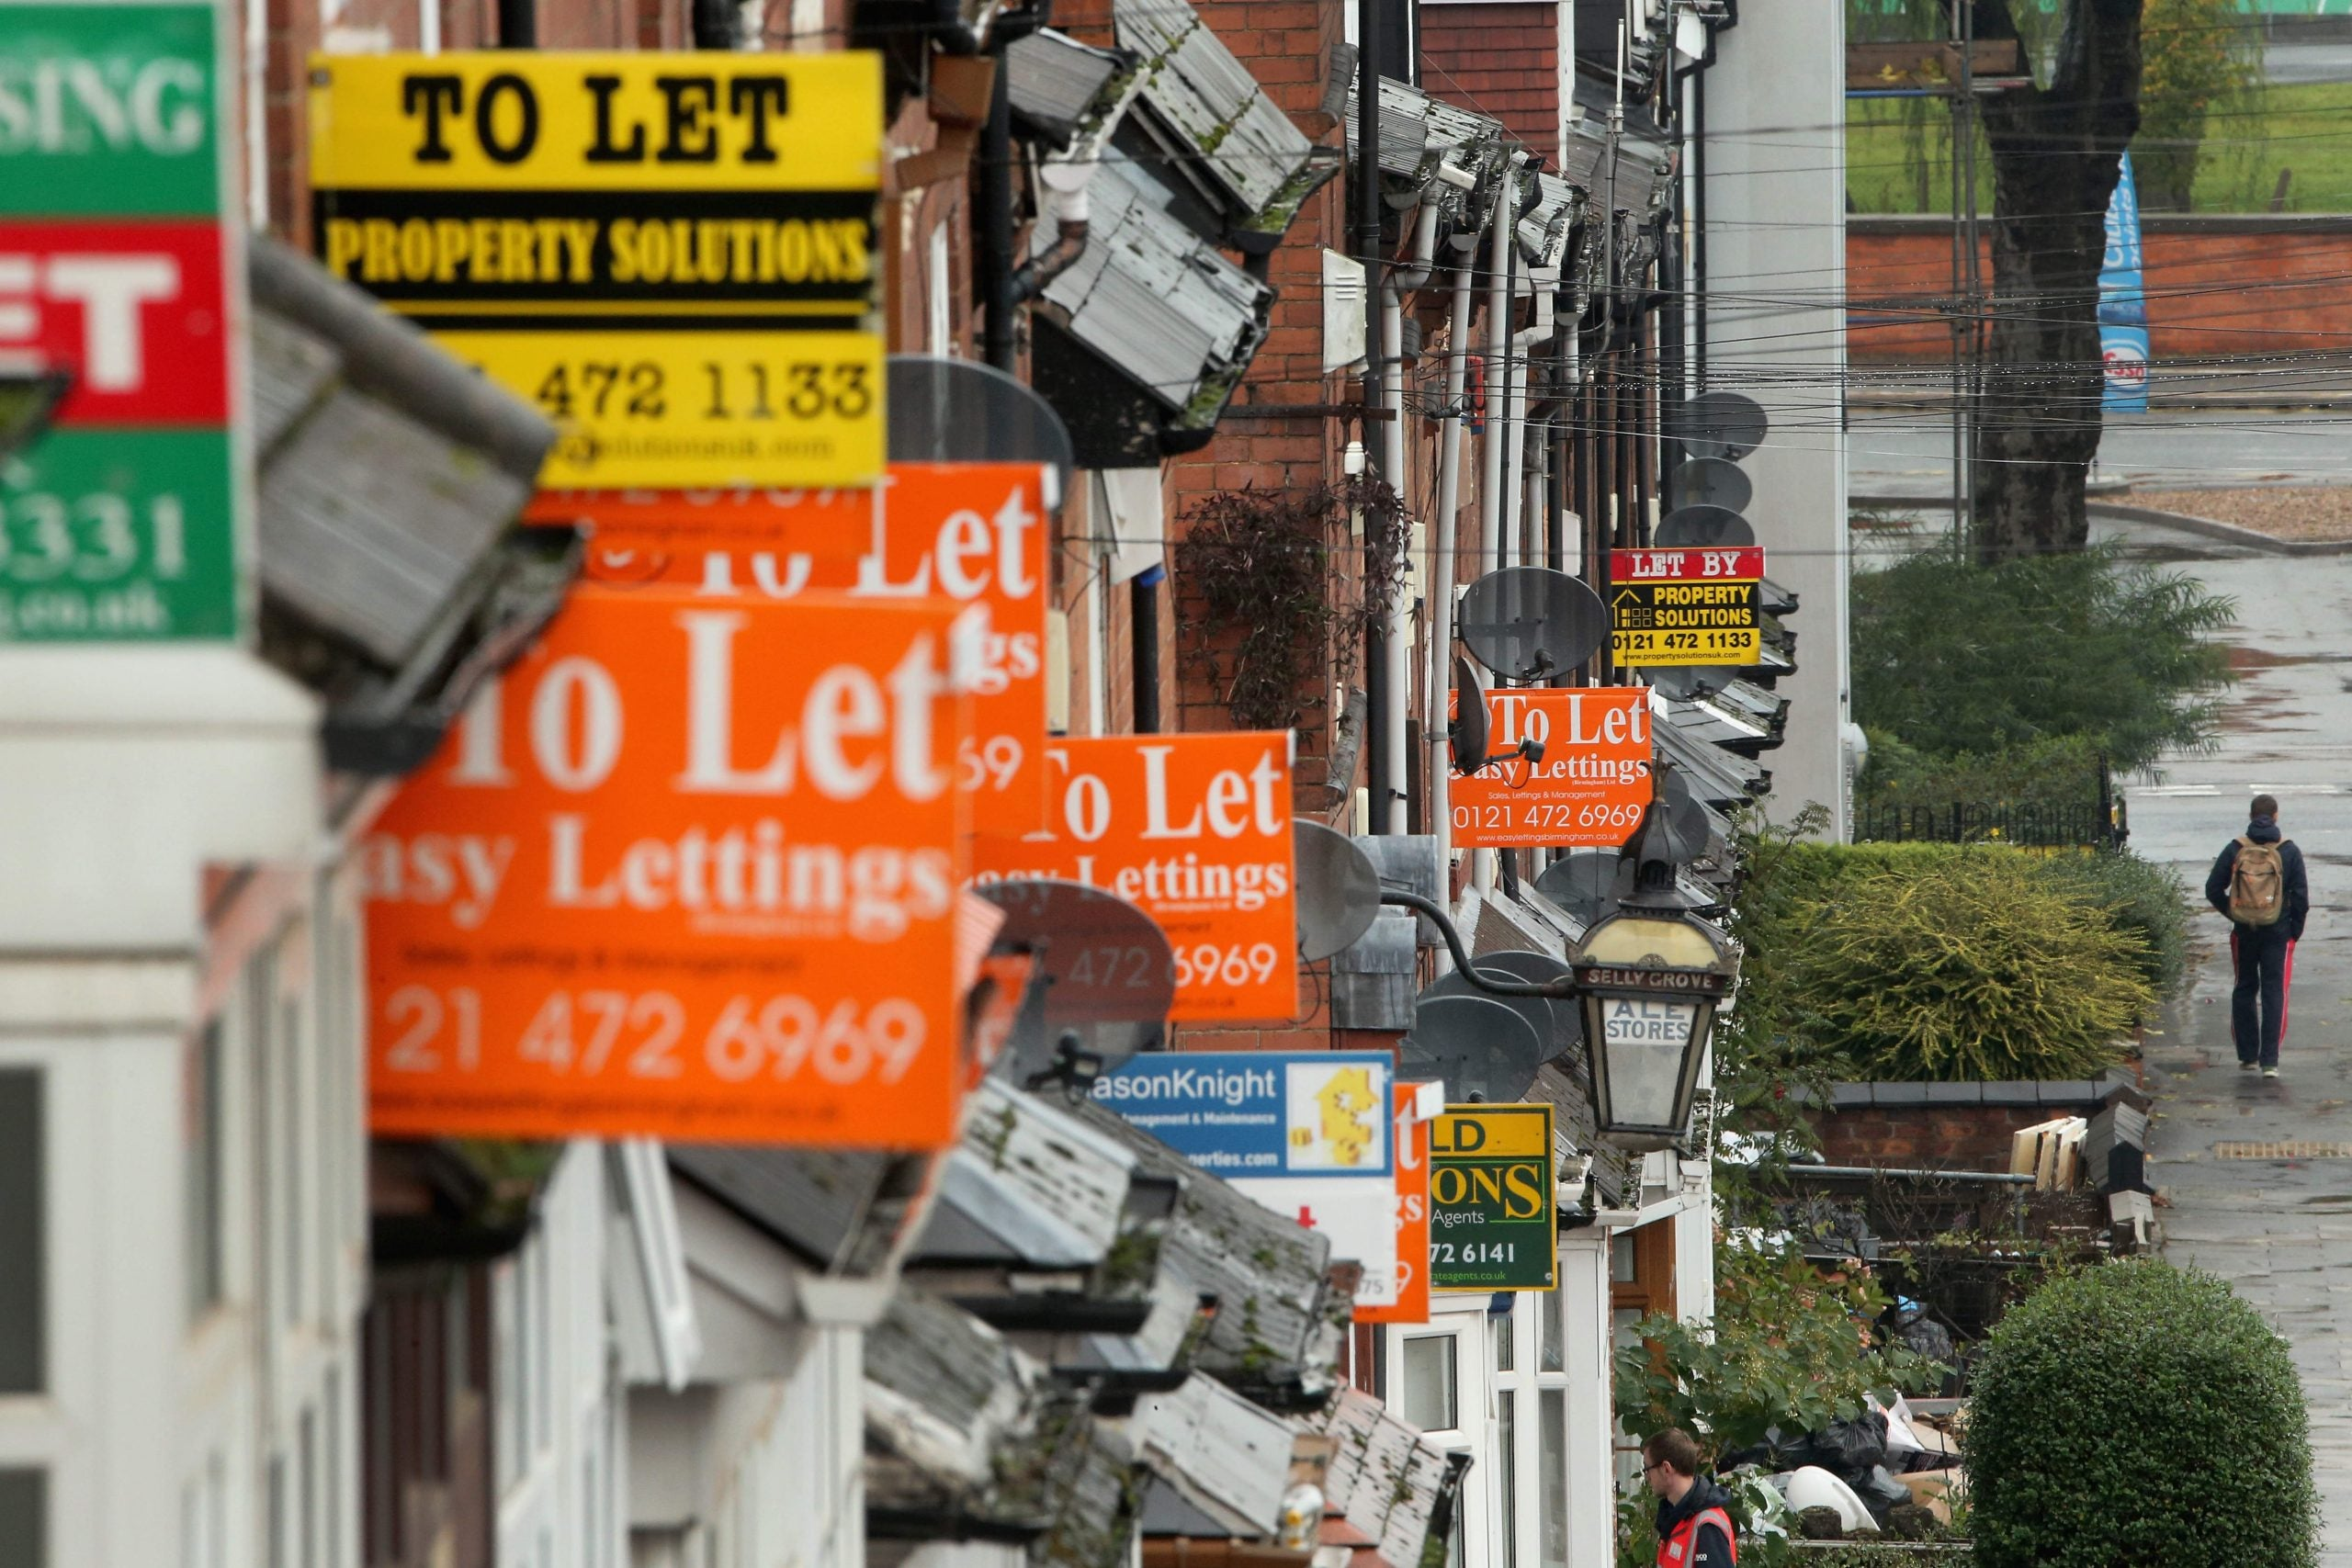 Renters have few rights in a sector run by hobbyists